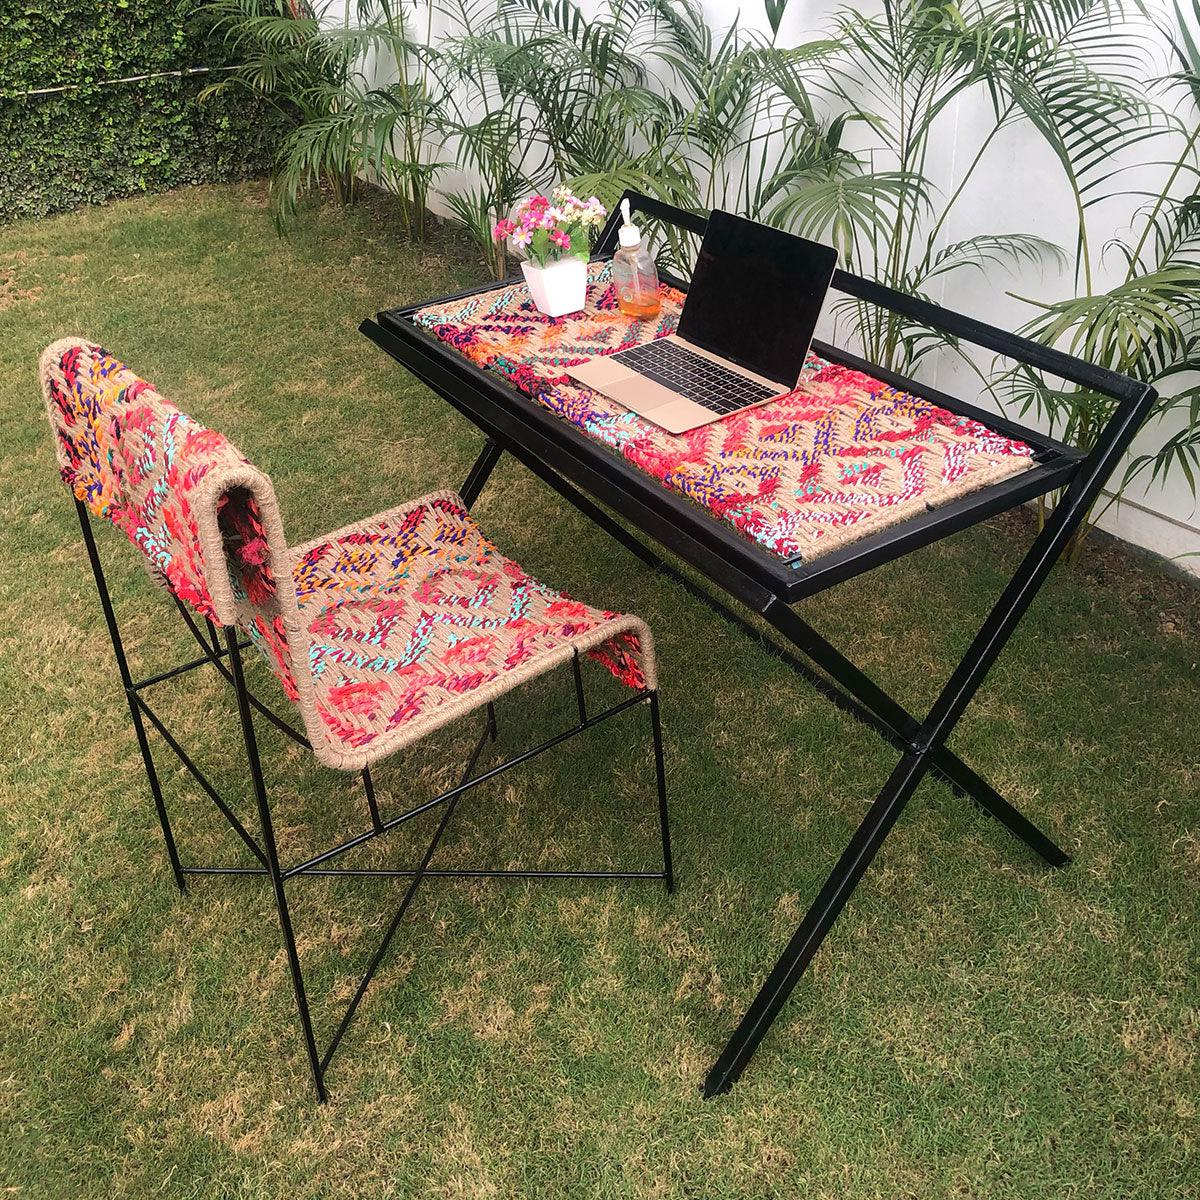 Work From Home Multifunctional Table & Chair Set